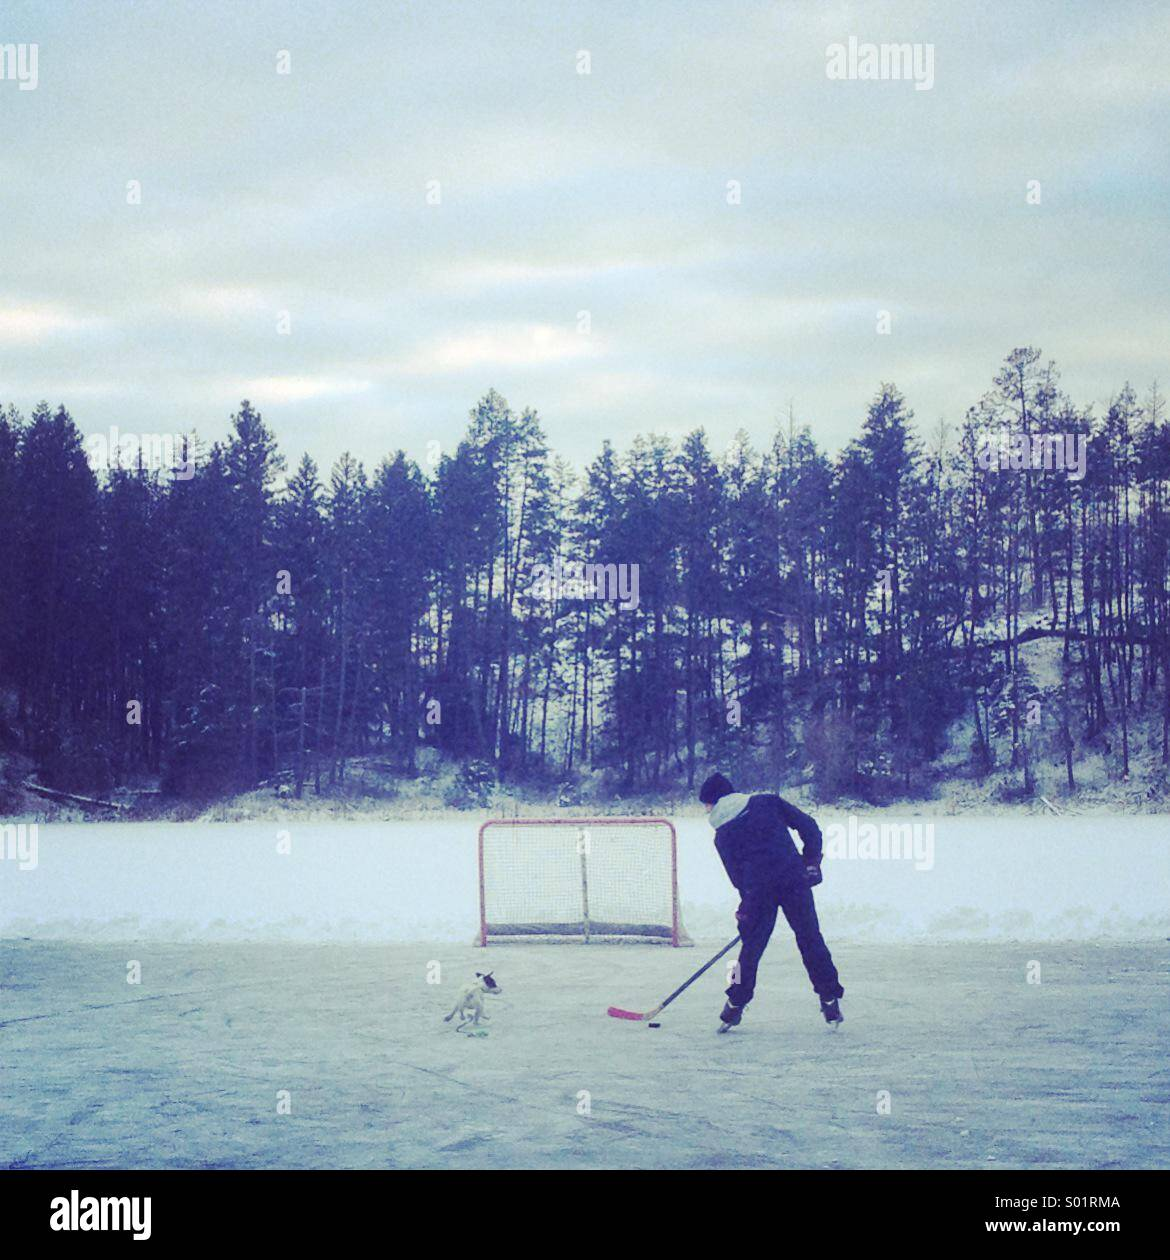 Canadian landscape: a boy playing hockey on a frozen pond with his dog in tow. - Stock Image